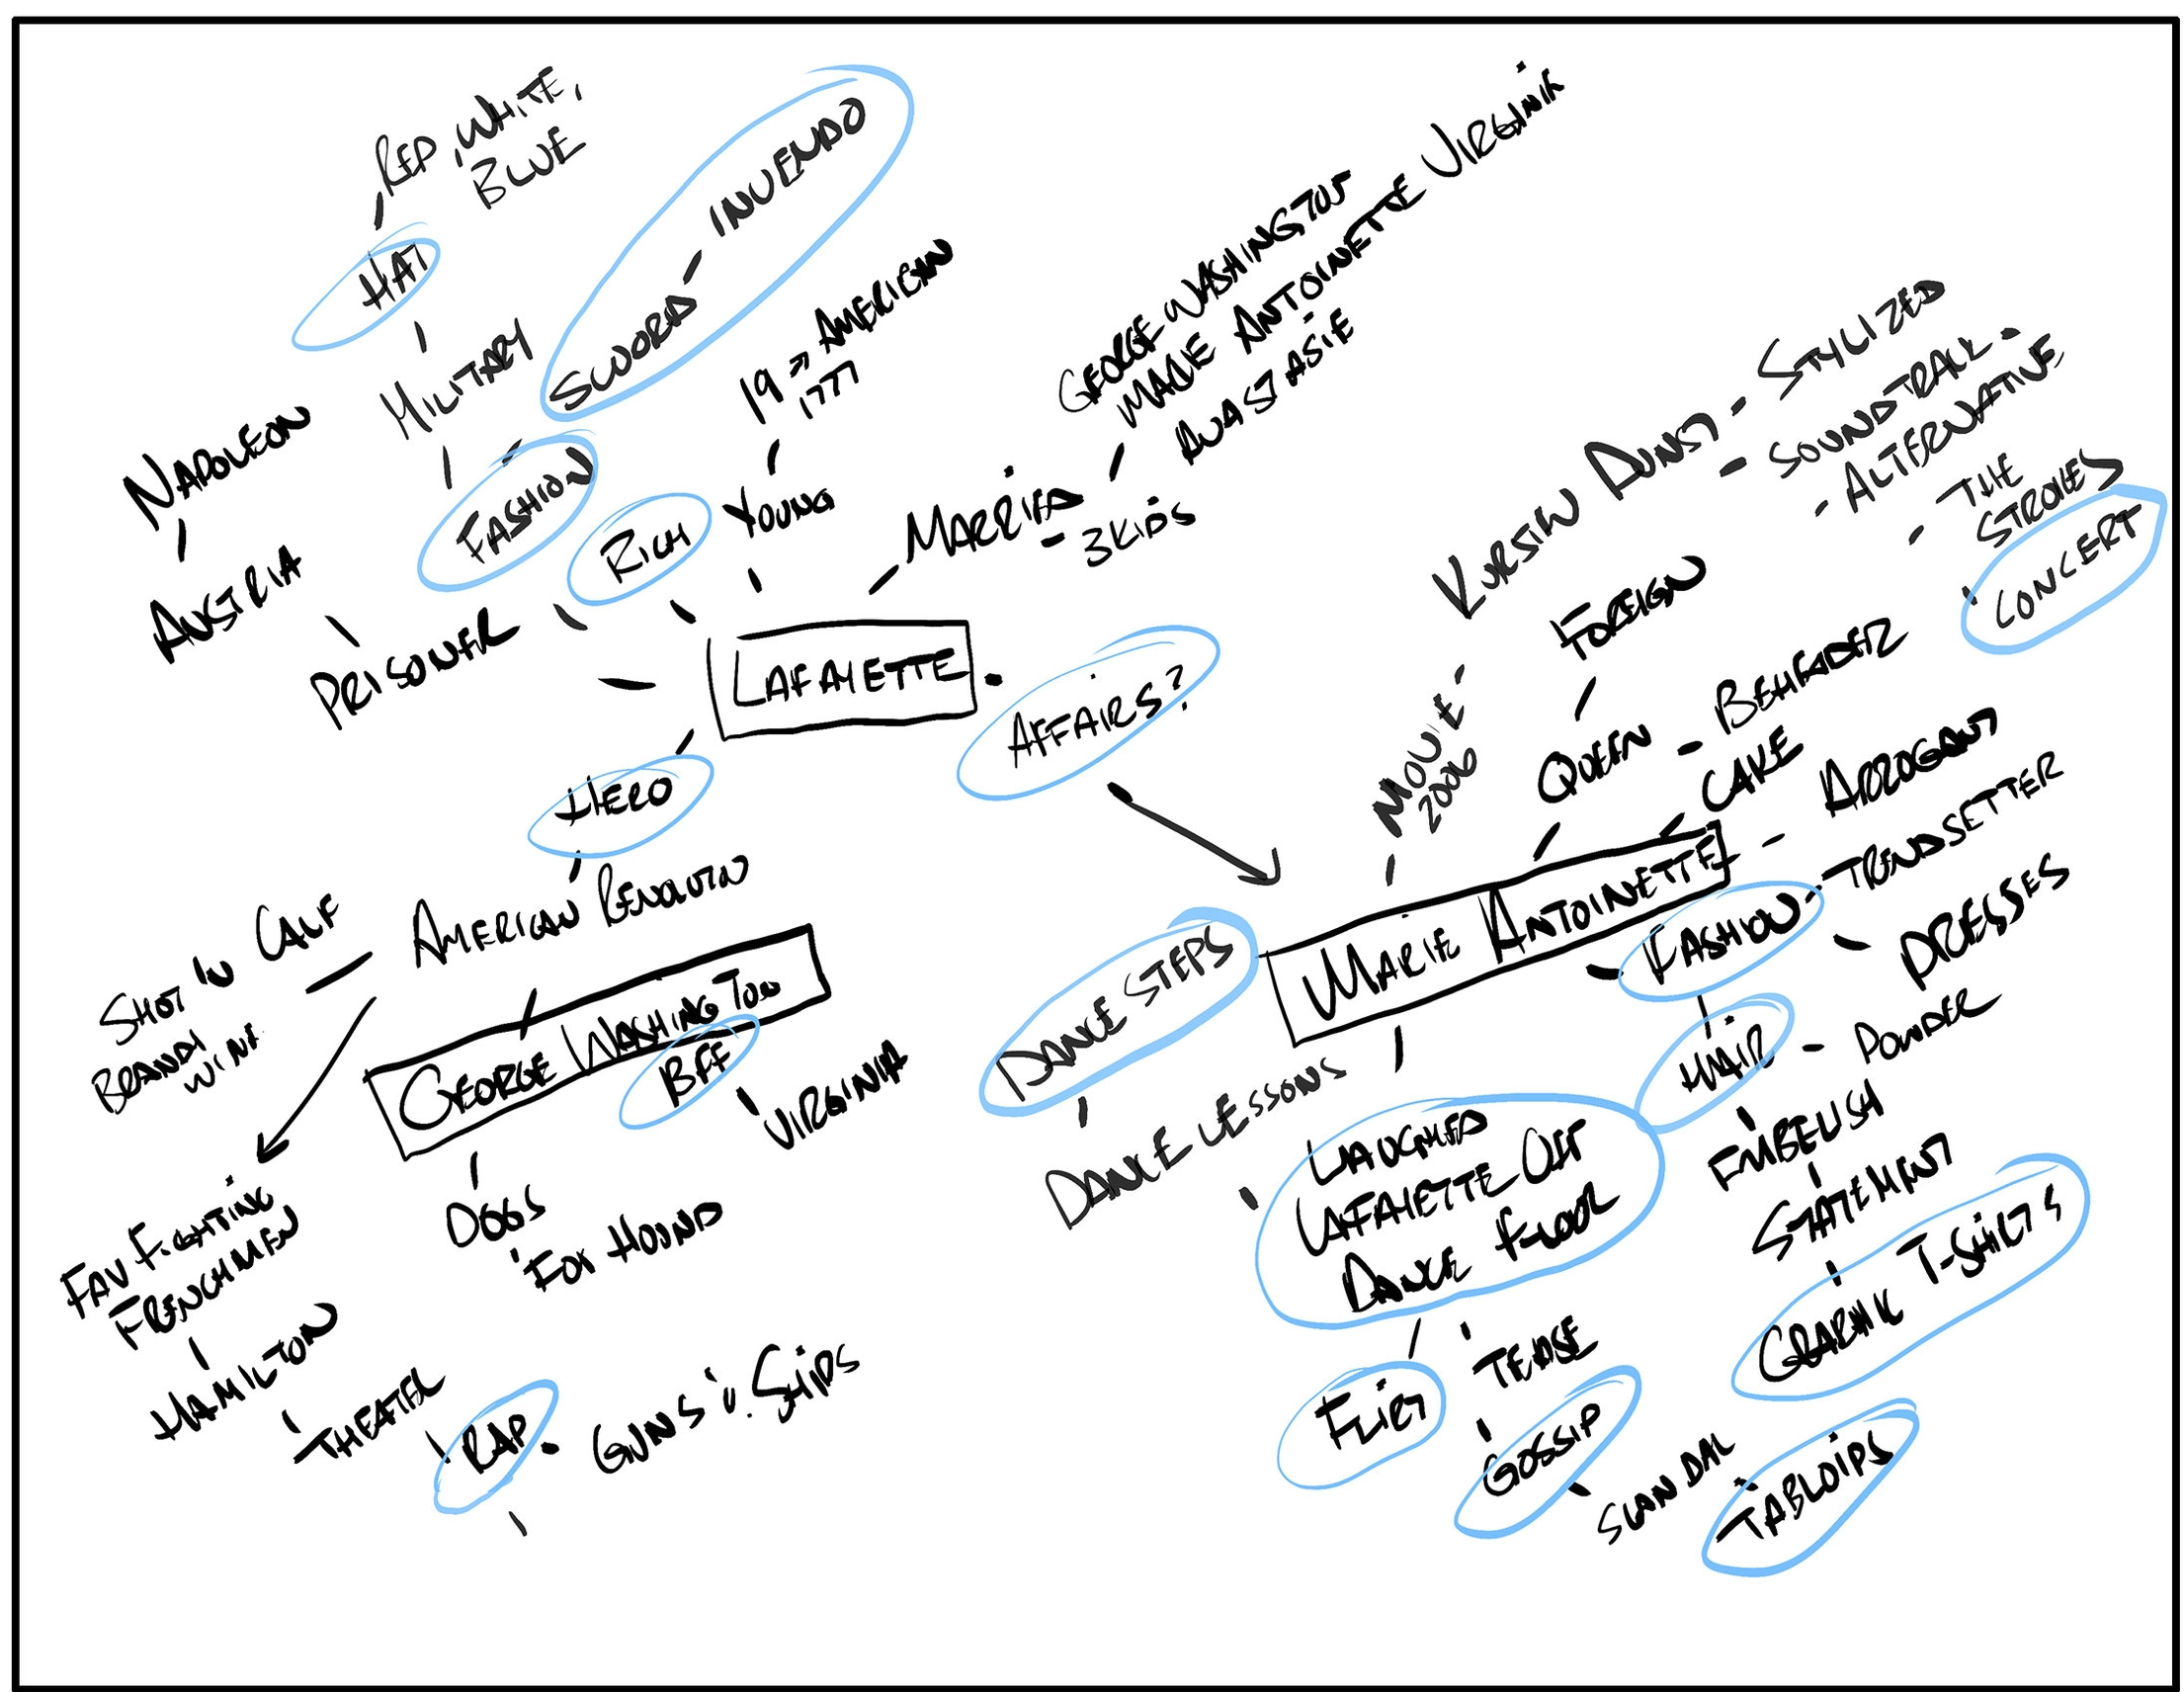 Mind Mapping technique used to explore the subject matter and lead to ideas for illustration concepts you may not have considered without taking a deep look.